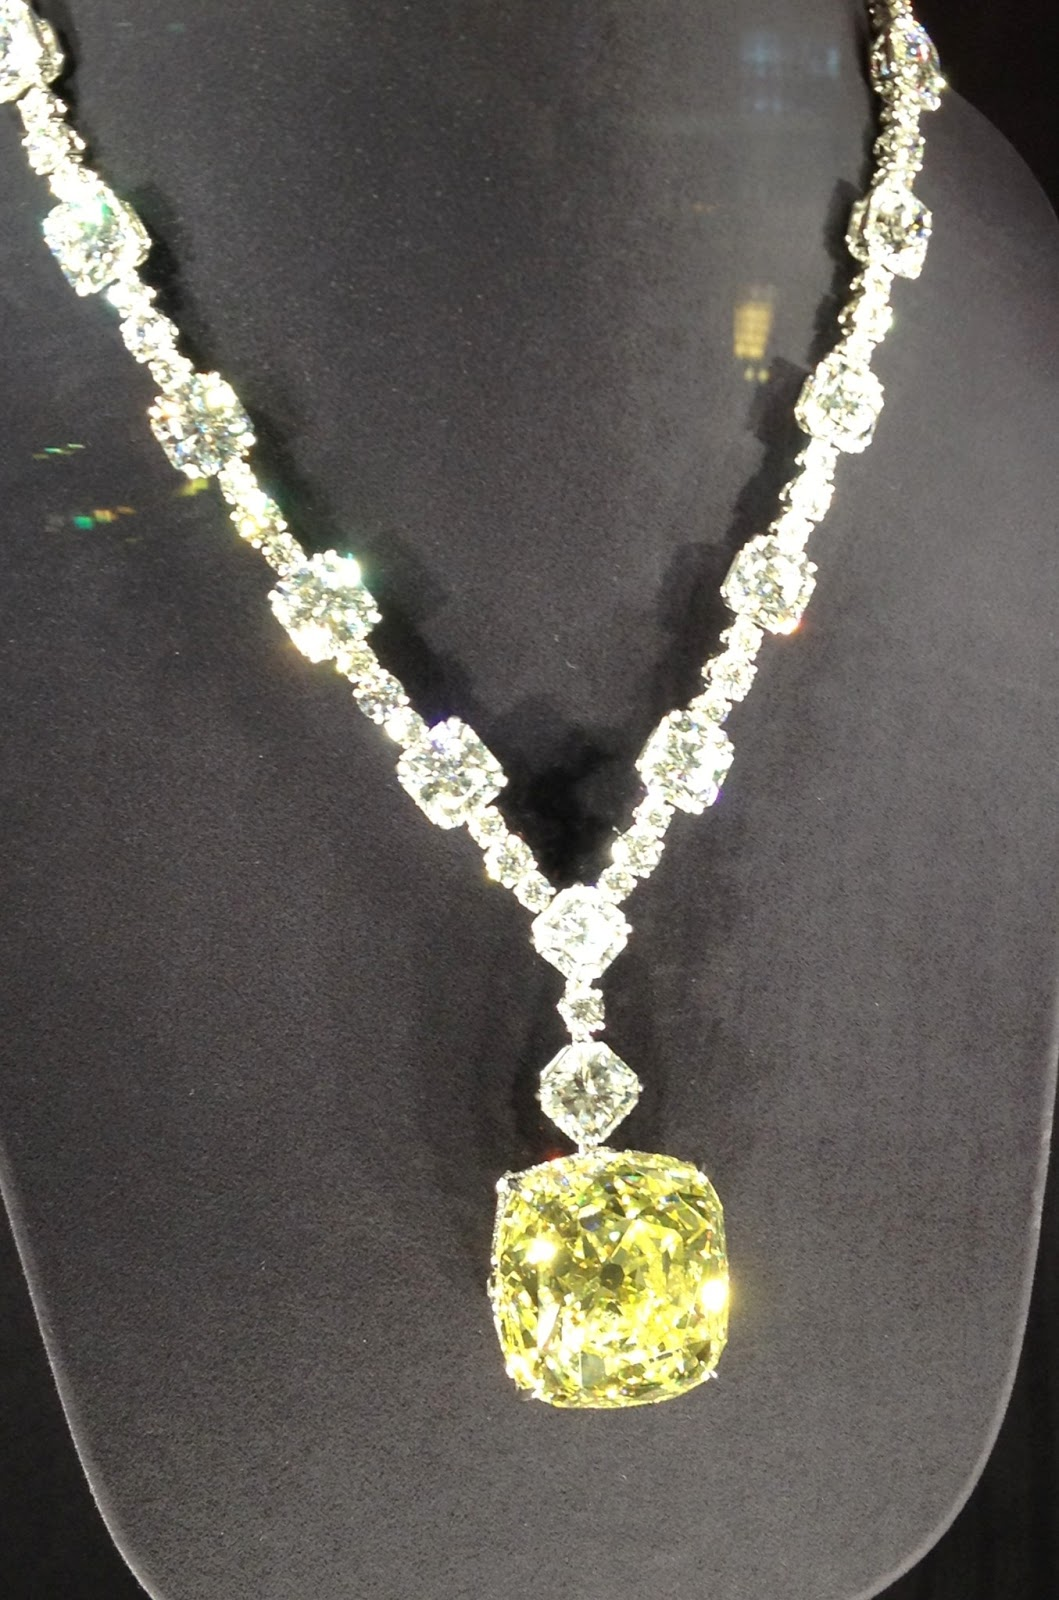 Bobochic miss b loves eing the tiffany diamond in dubai this is the legendary diamond which was set in tiffany designer jean schlumbergers ribbon rosette necklace and worn by audrey hepburn to promote the film aloadofball Gallery